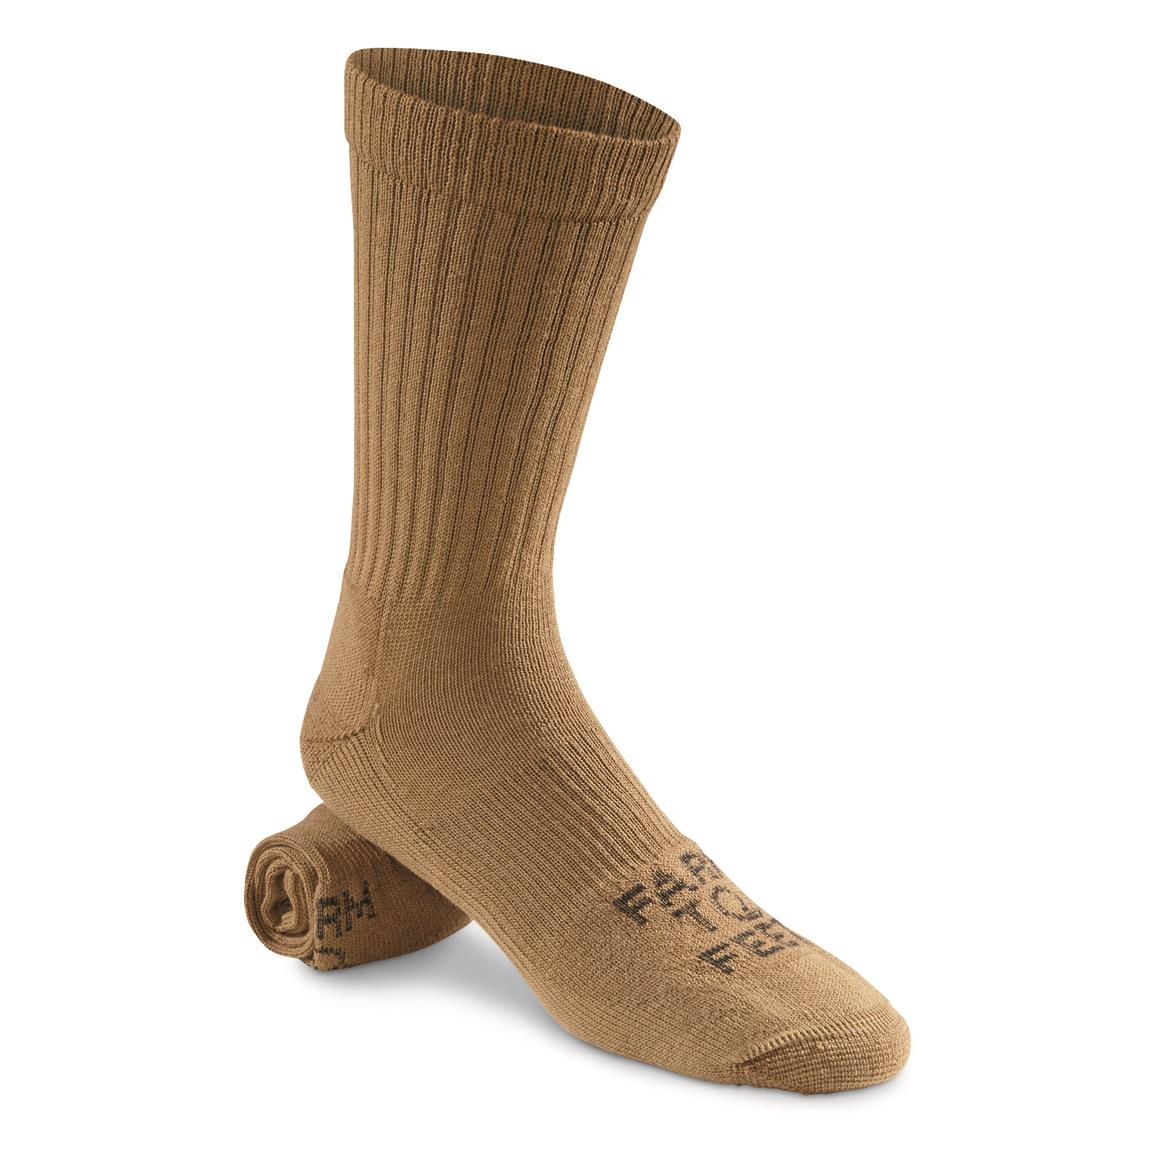 Farm to Feet Coronado Lightweight Crew Socks, Coyote Brown